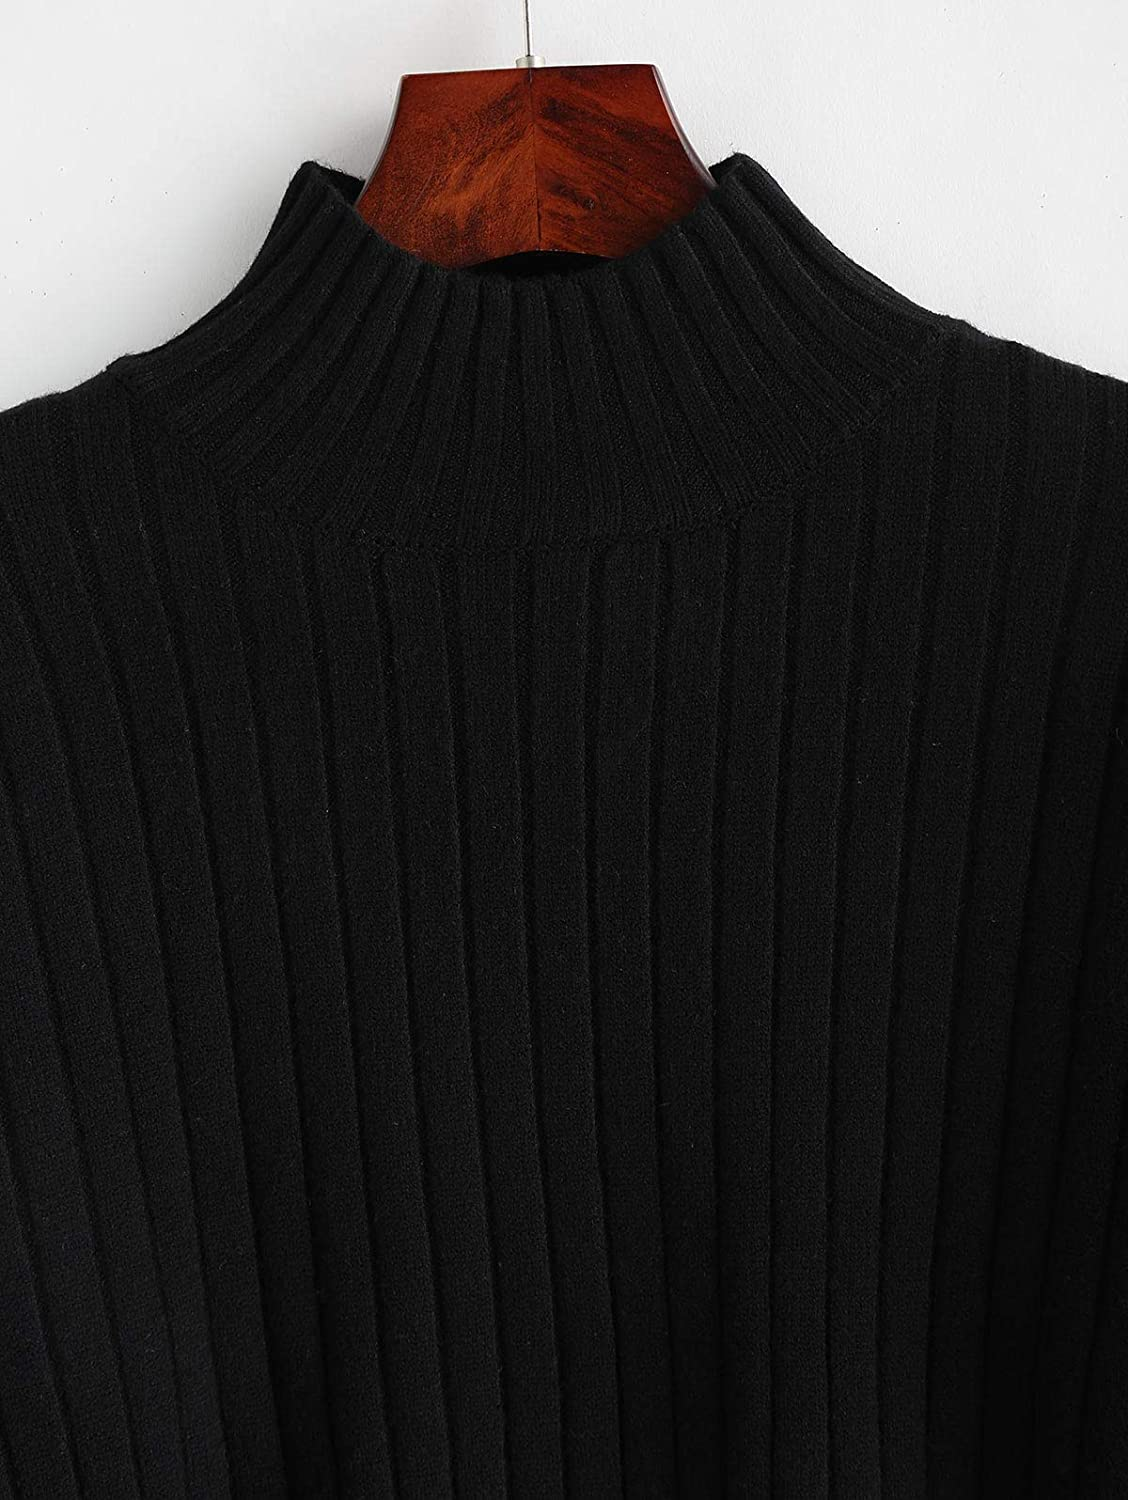 ZAFUL Pull Femme Tricot/é Col Roul/é Sweater /à Manches Longues Hiver Chaud Pullover